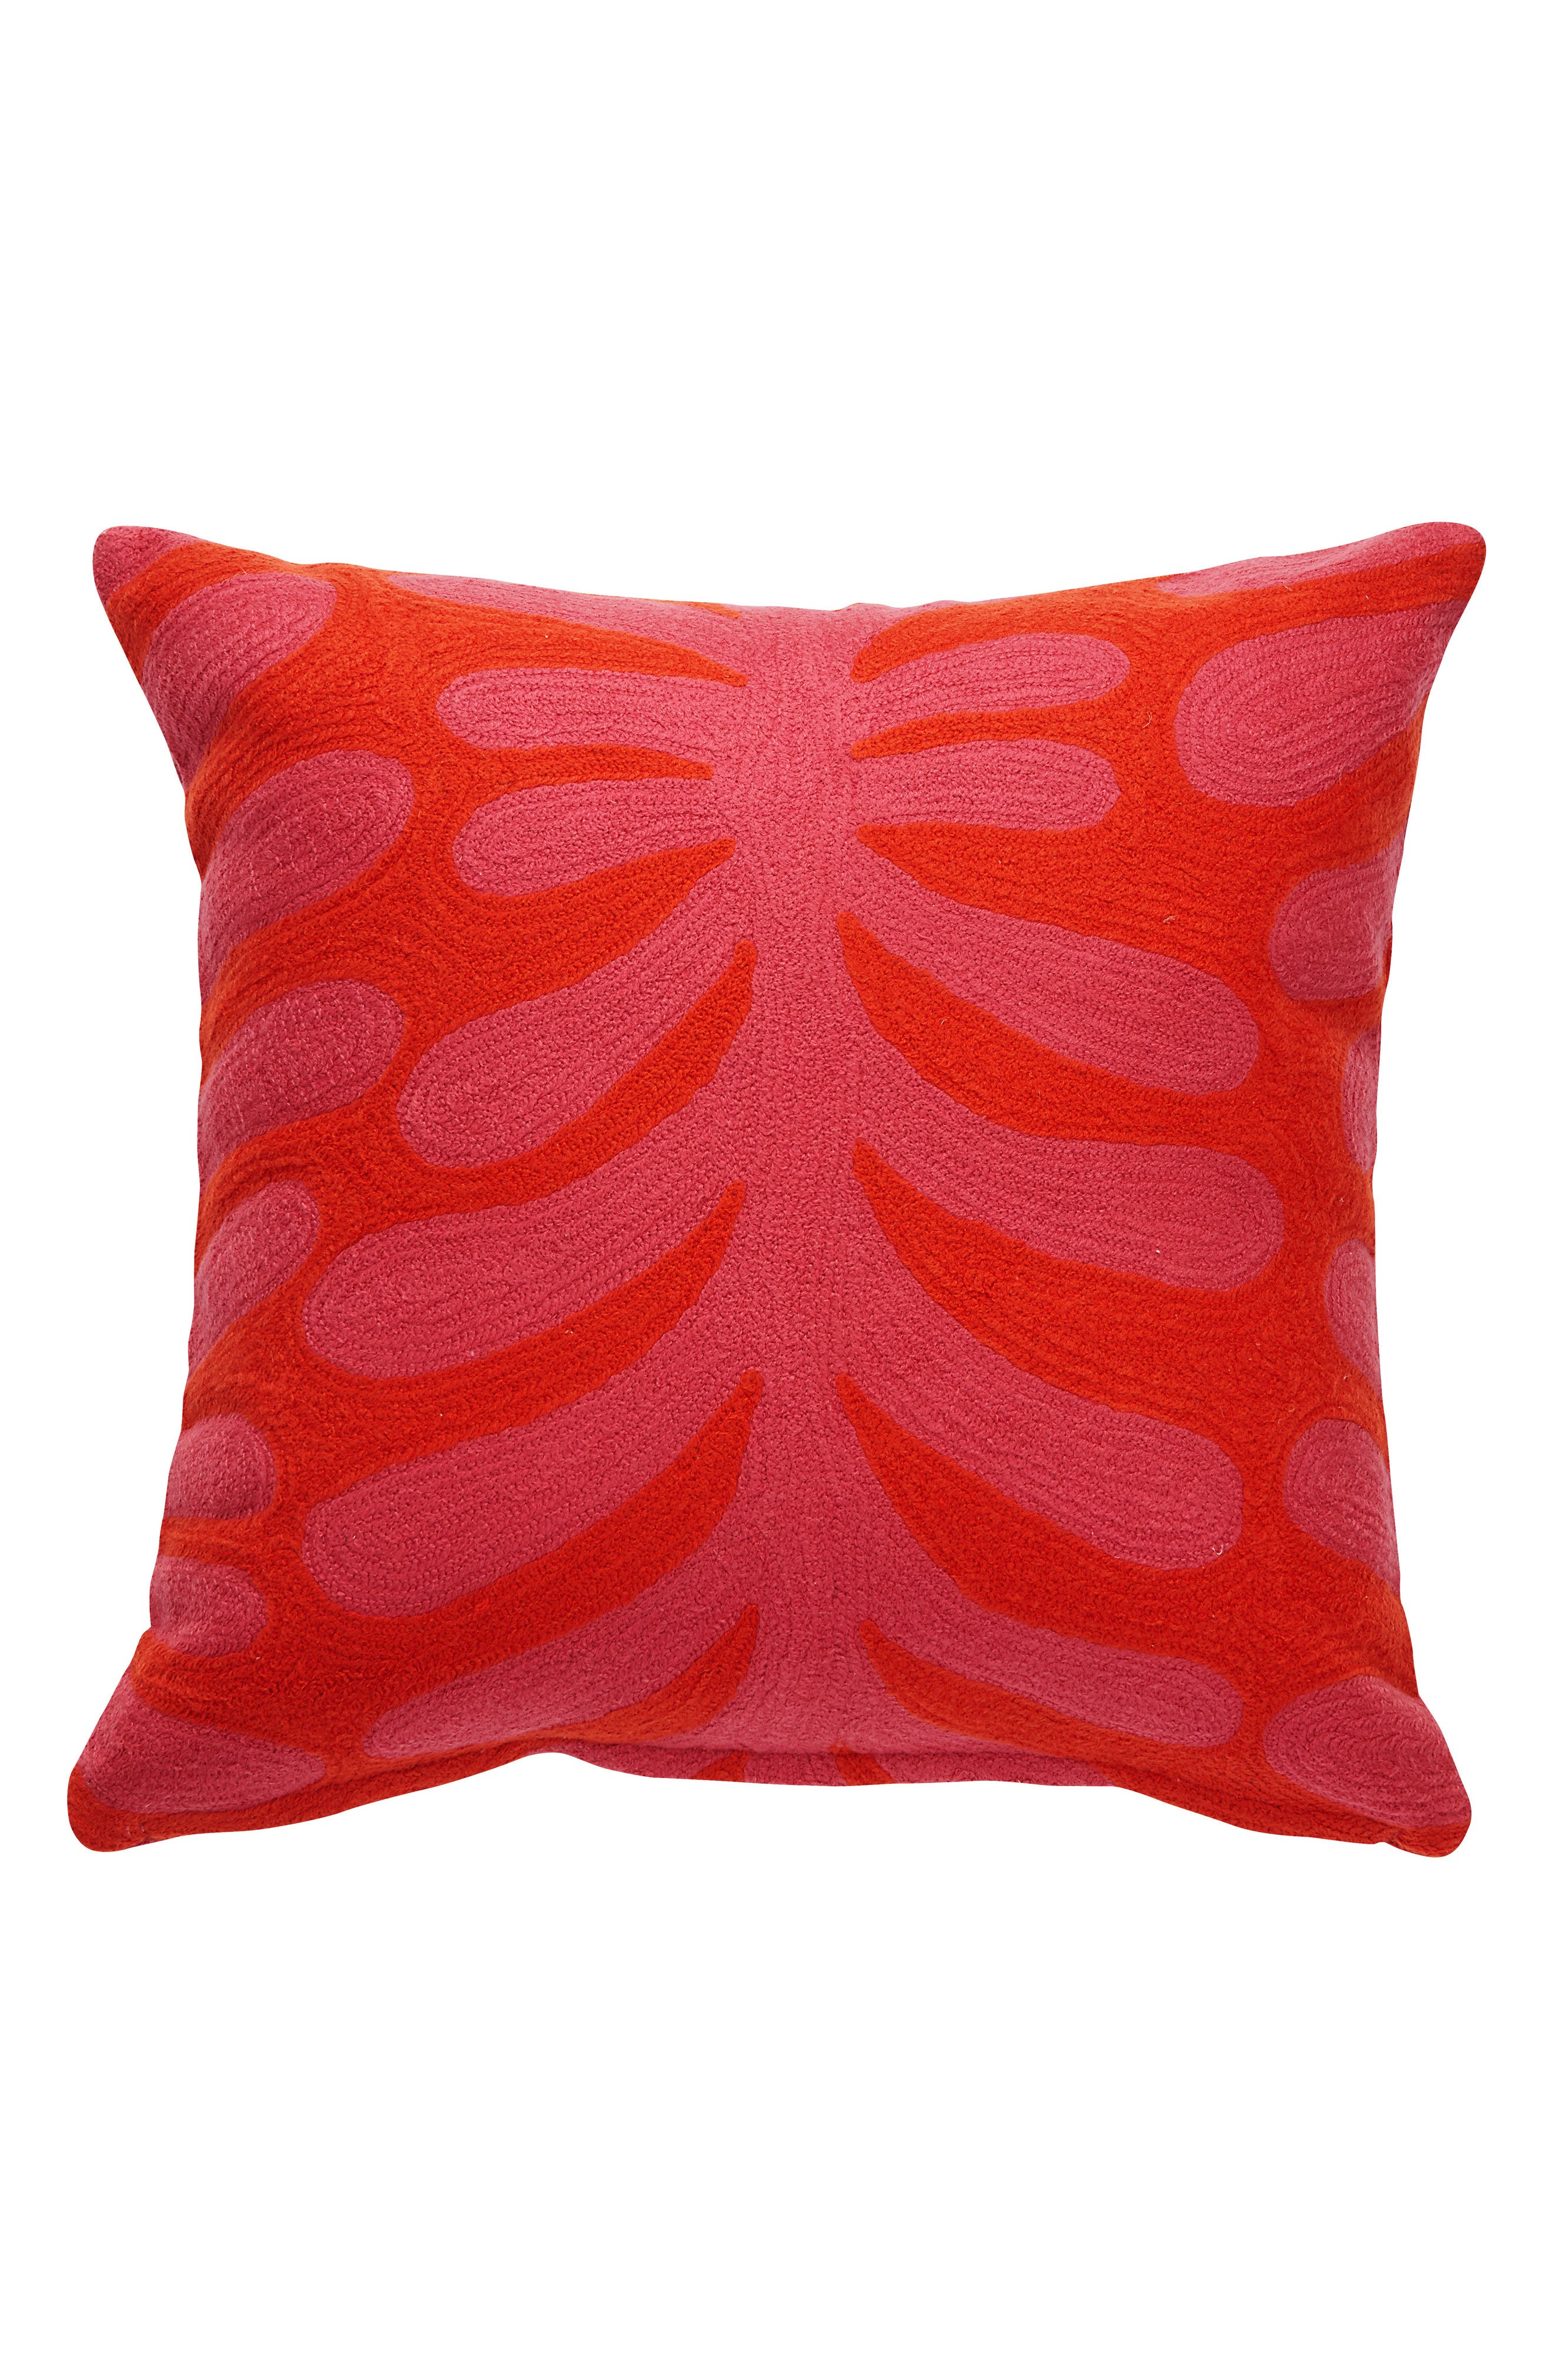 Alternate Image 1 Selected - kate spade new york abstract vine accent pillow